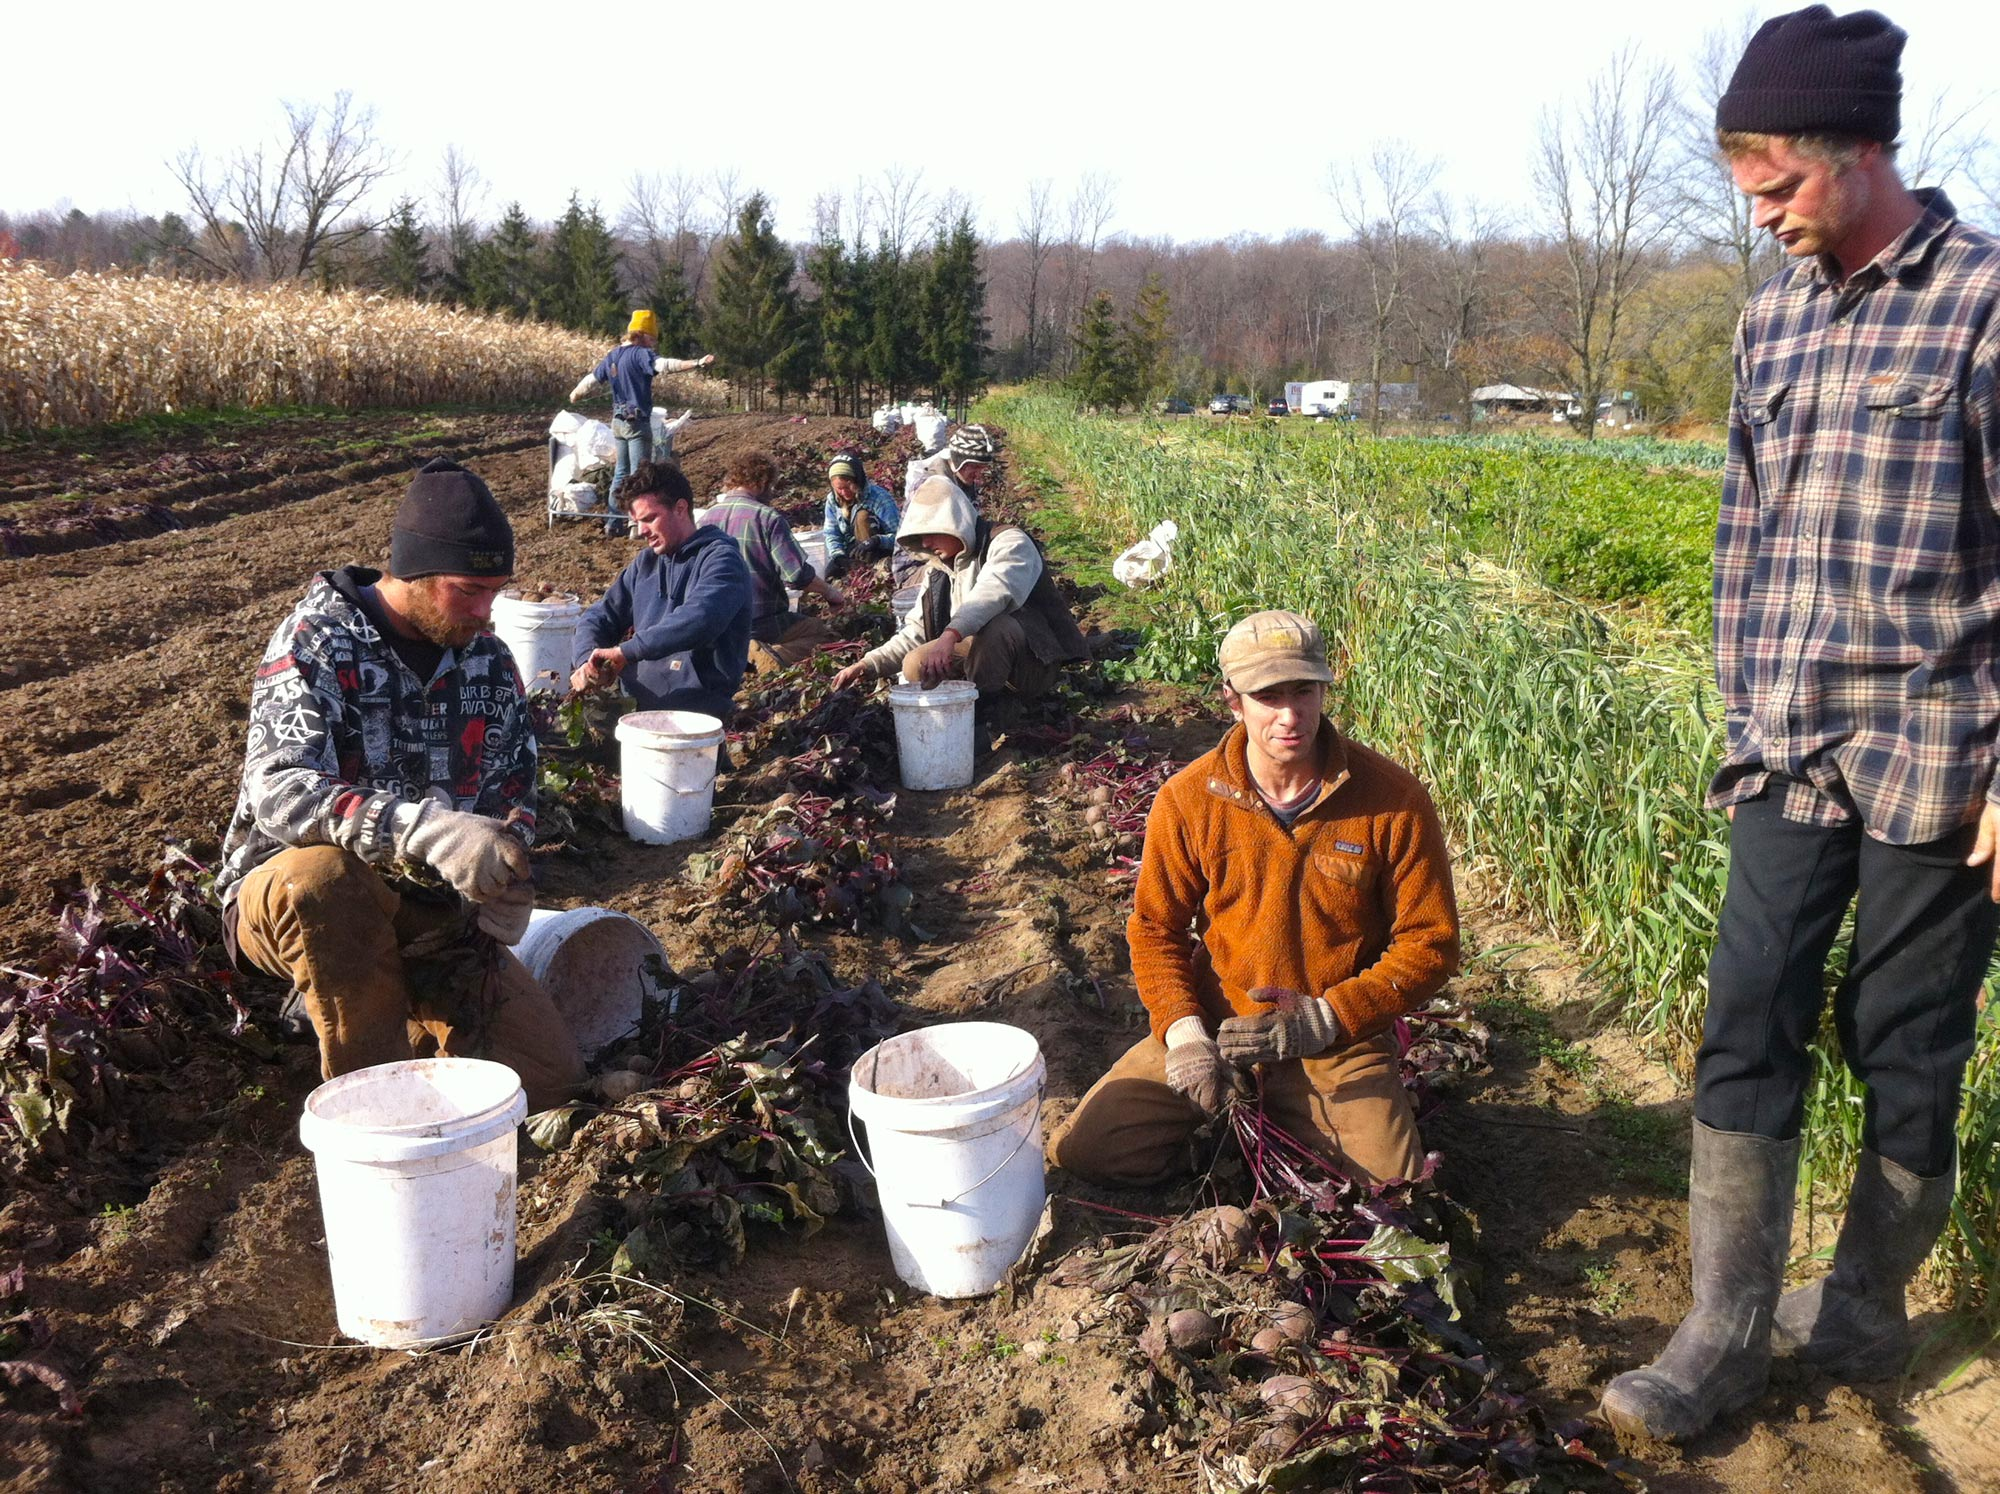 Essex farms grows beets and young farmers. Photo by Kristin Kimball.